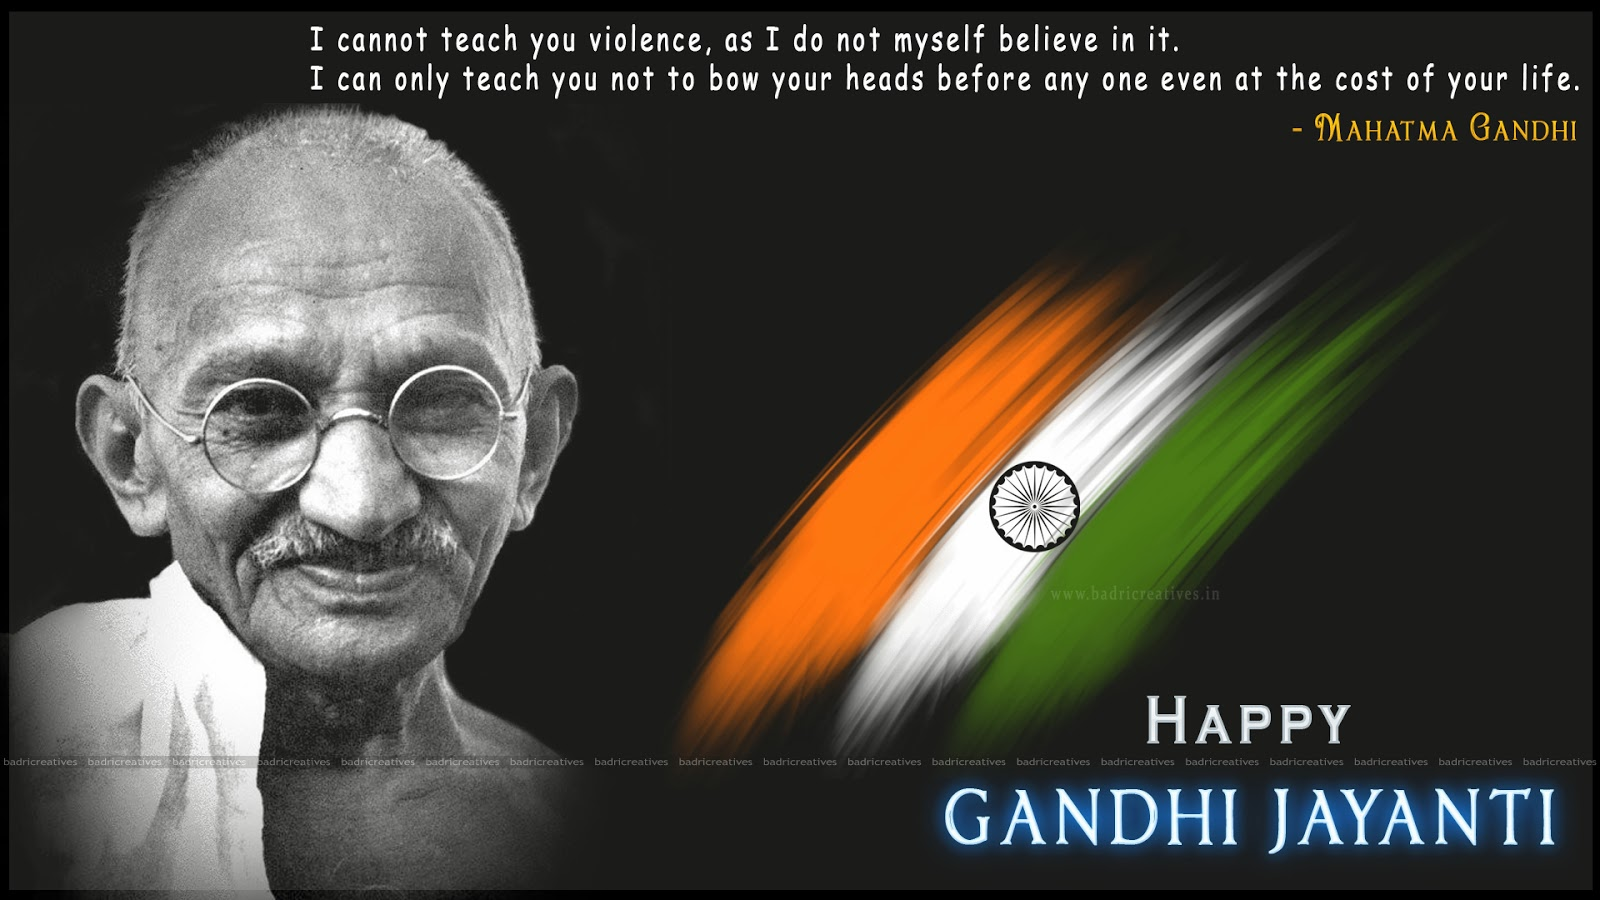 a biography of mahatma gandhi The time line of mahatma gandhi, also known as the father of nation in india more about gandhi and indian freedom struggle in mahatma gandhi biography.